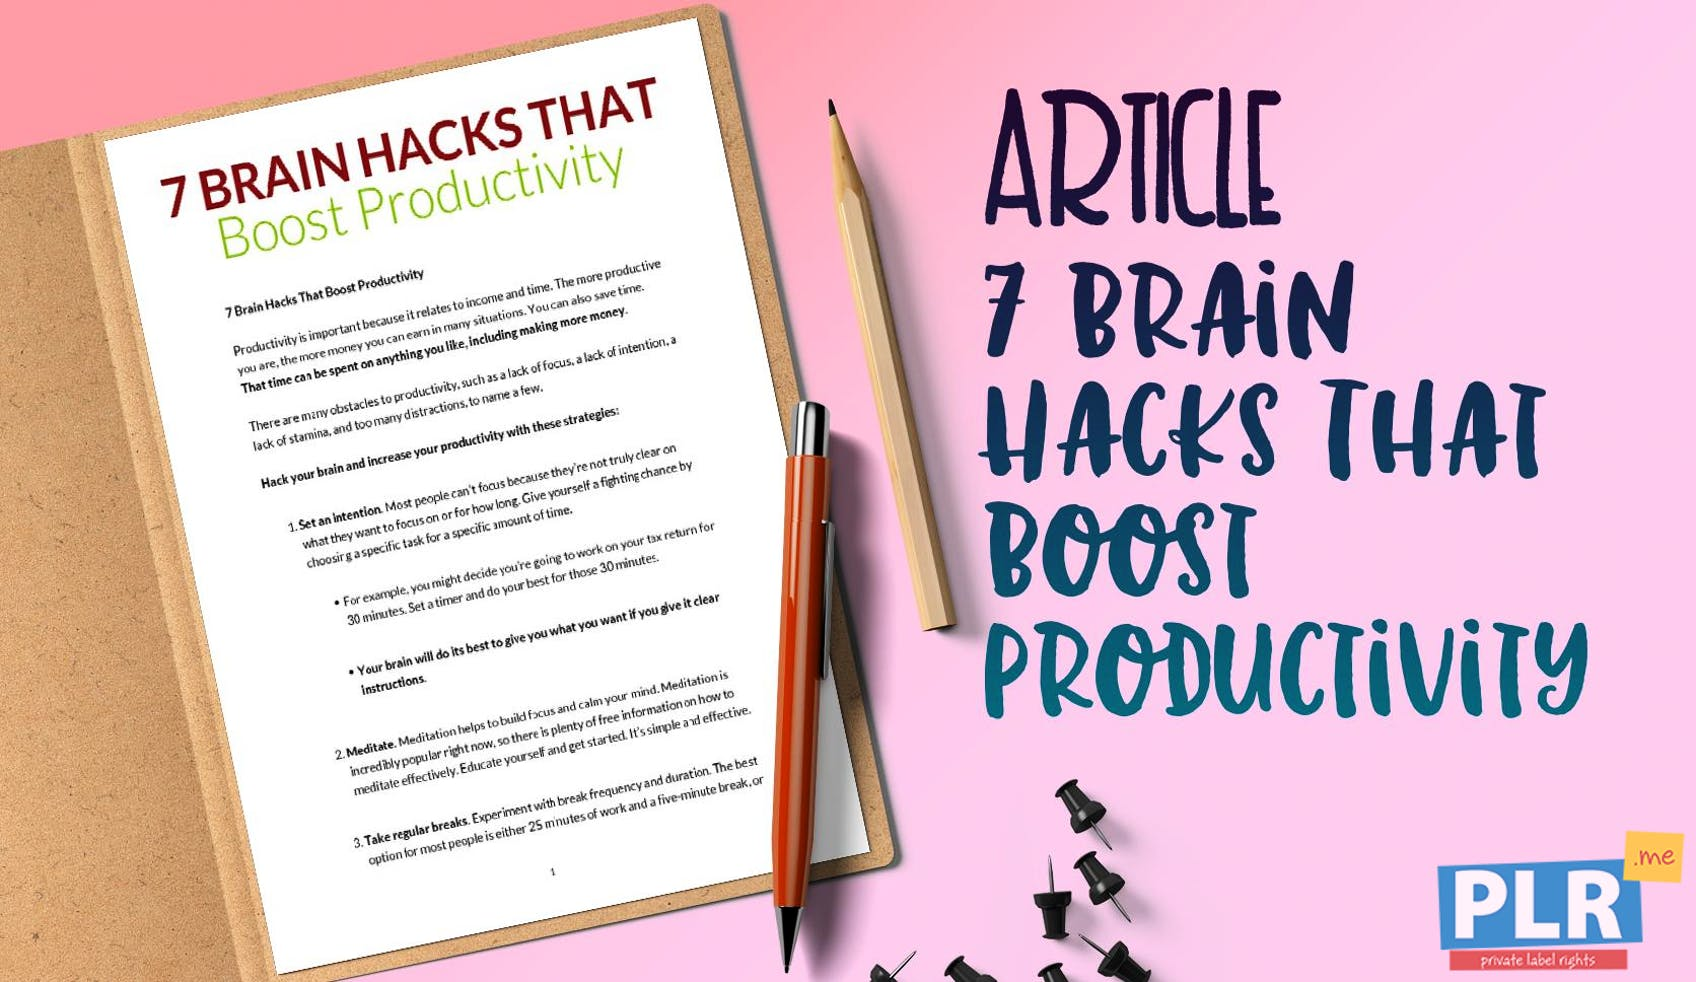 7 Brain Hacks That Boost Productivity